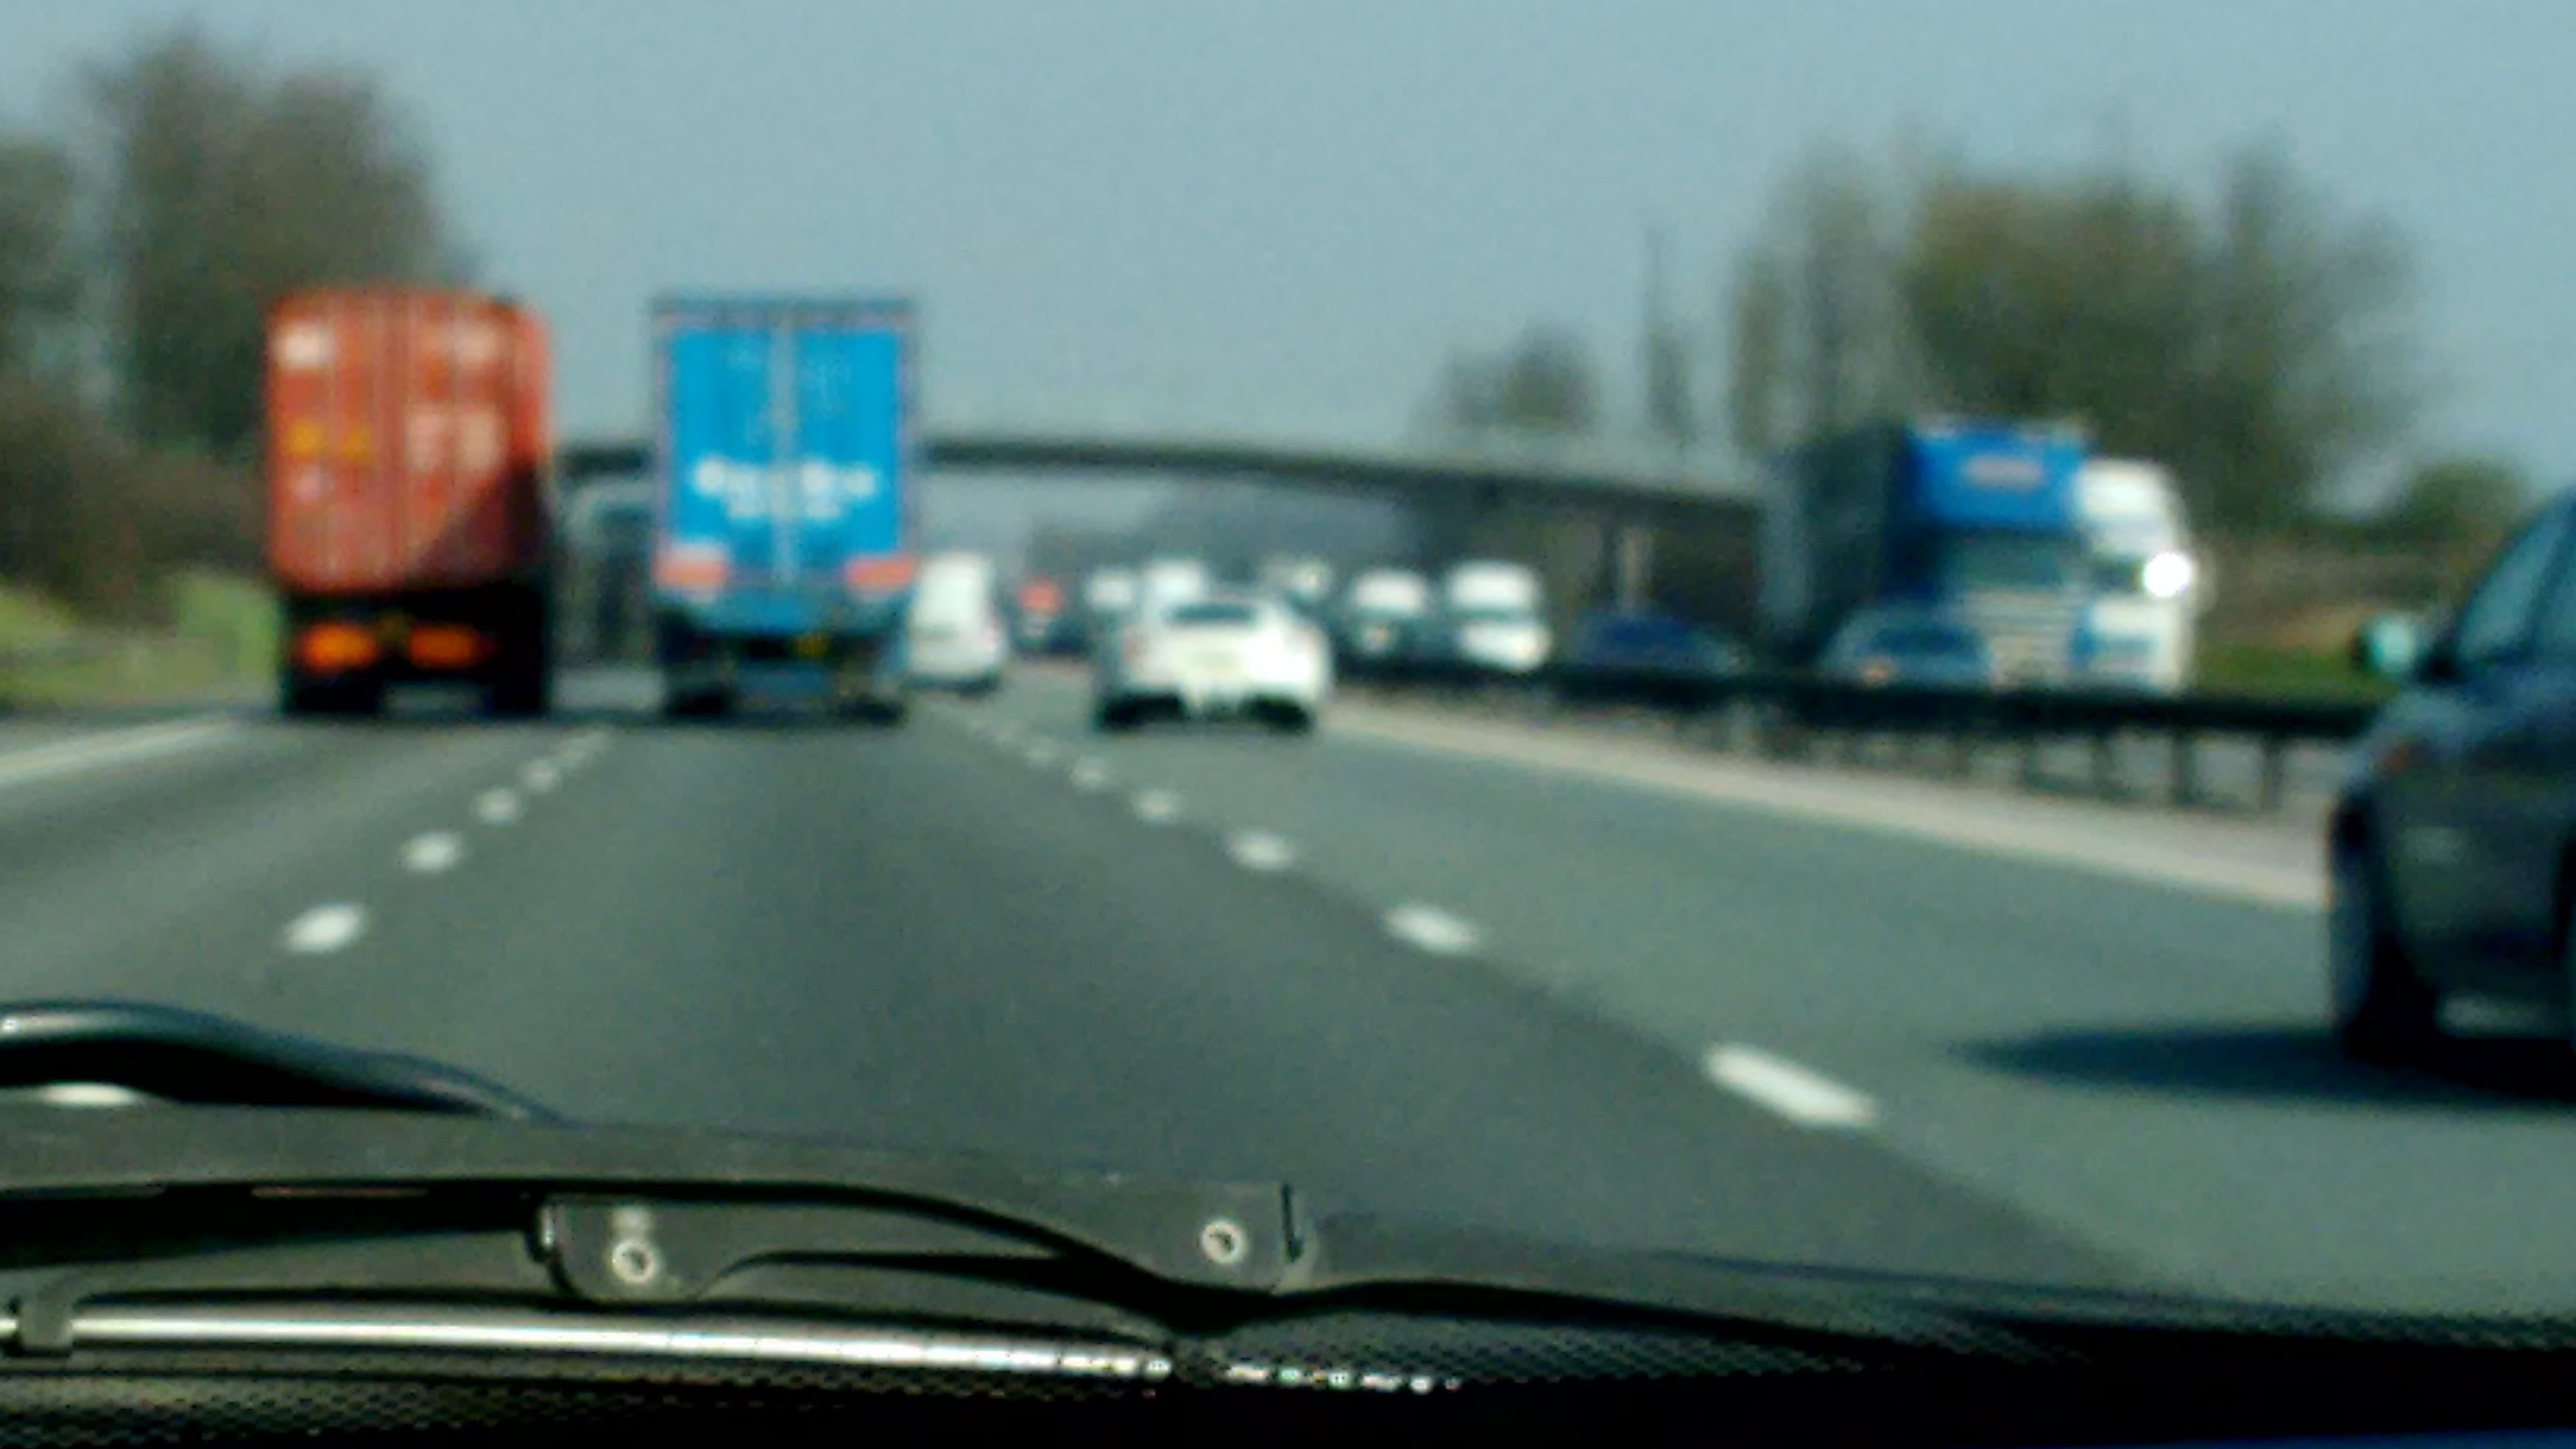 Picture of a a highway taken through a car's windshield